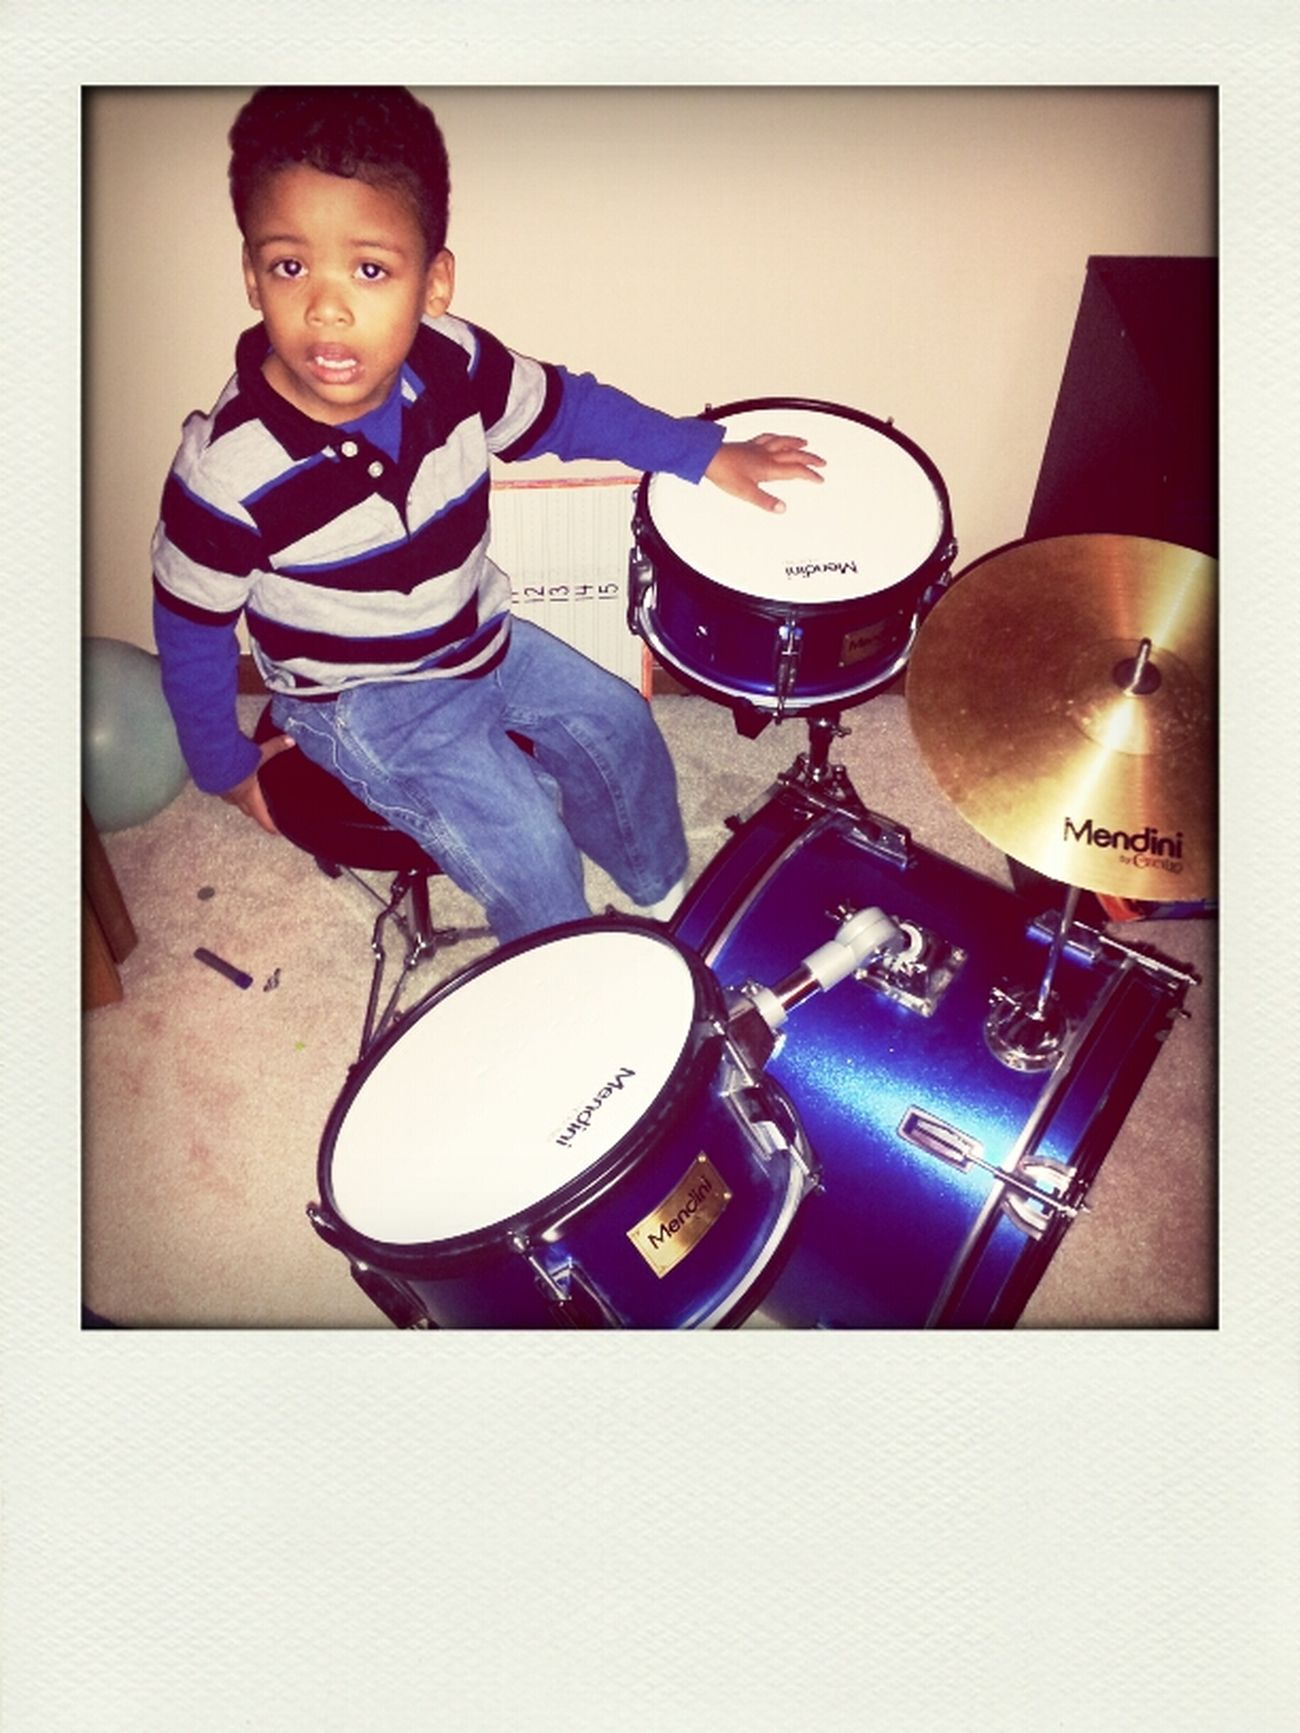 Practicing to become a future drummer